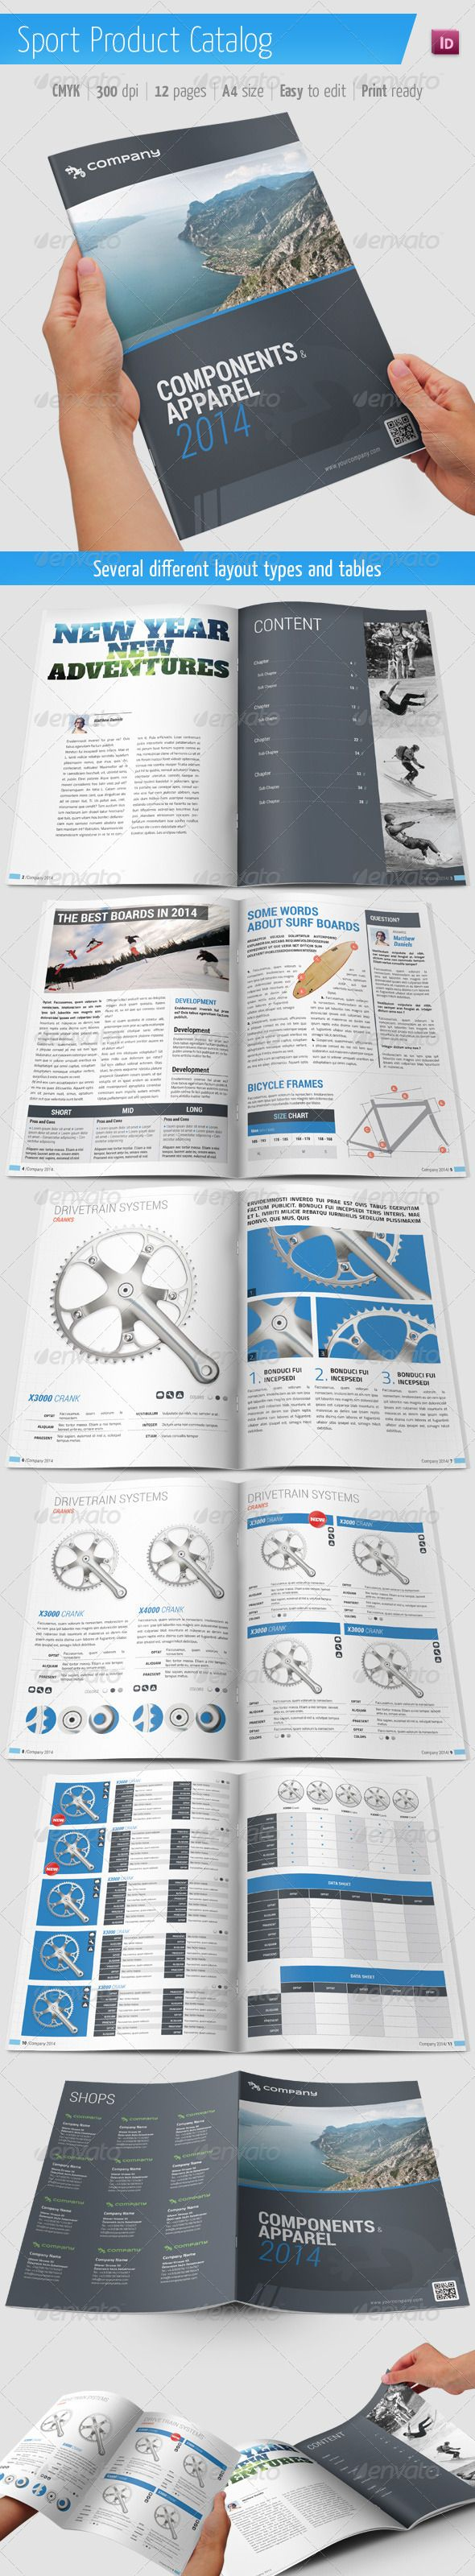 sports brochure templates - 78 best ideas about product catalog template on pinterest